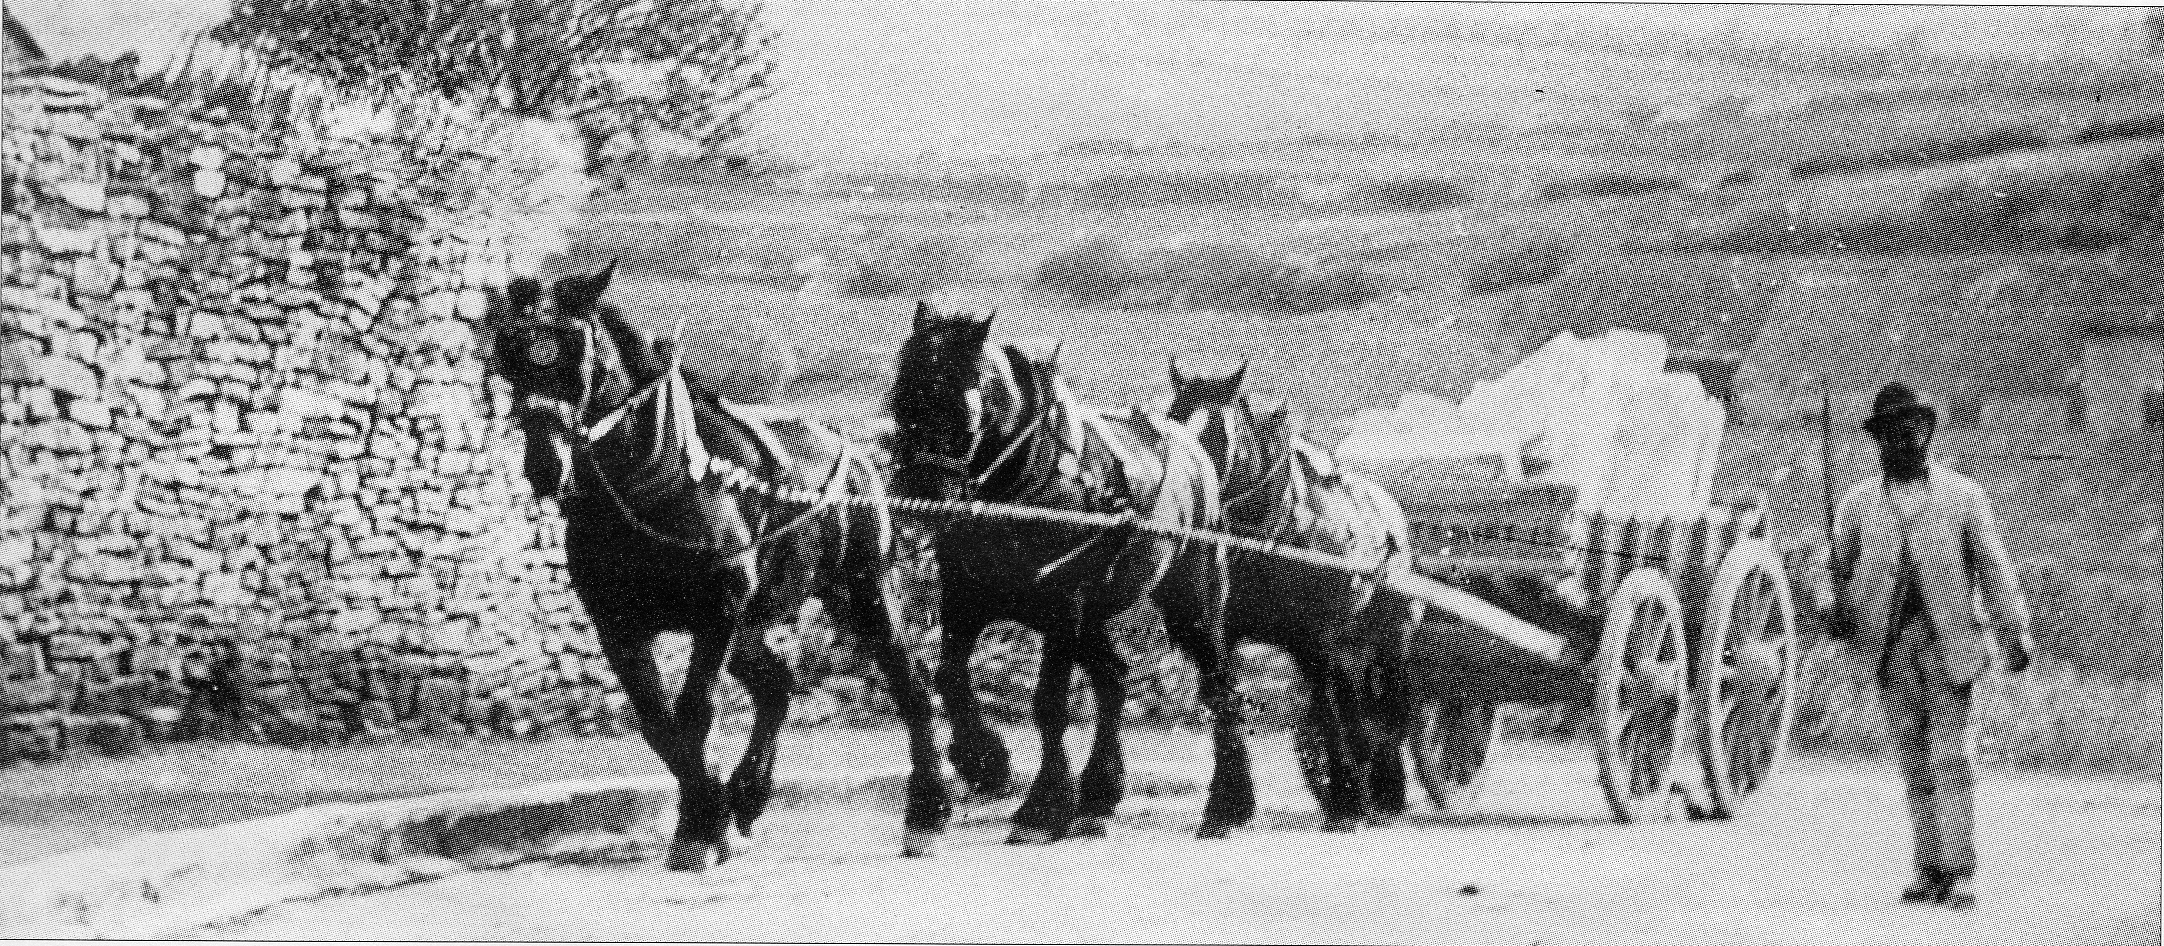 PURBECK PAST: A wagon on Steps Hill in Langton Matravers, taking stone to the bankers at Swanage in 1895 Picture courtesy of Purbeck Camera by Mike O'Hara and Ben Buxton